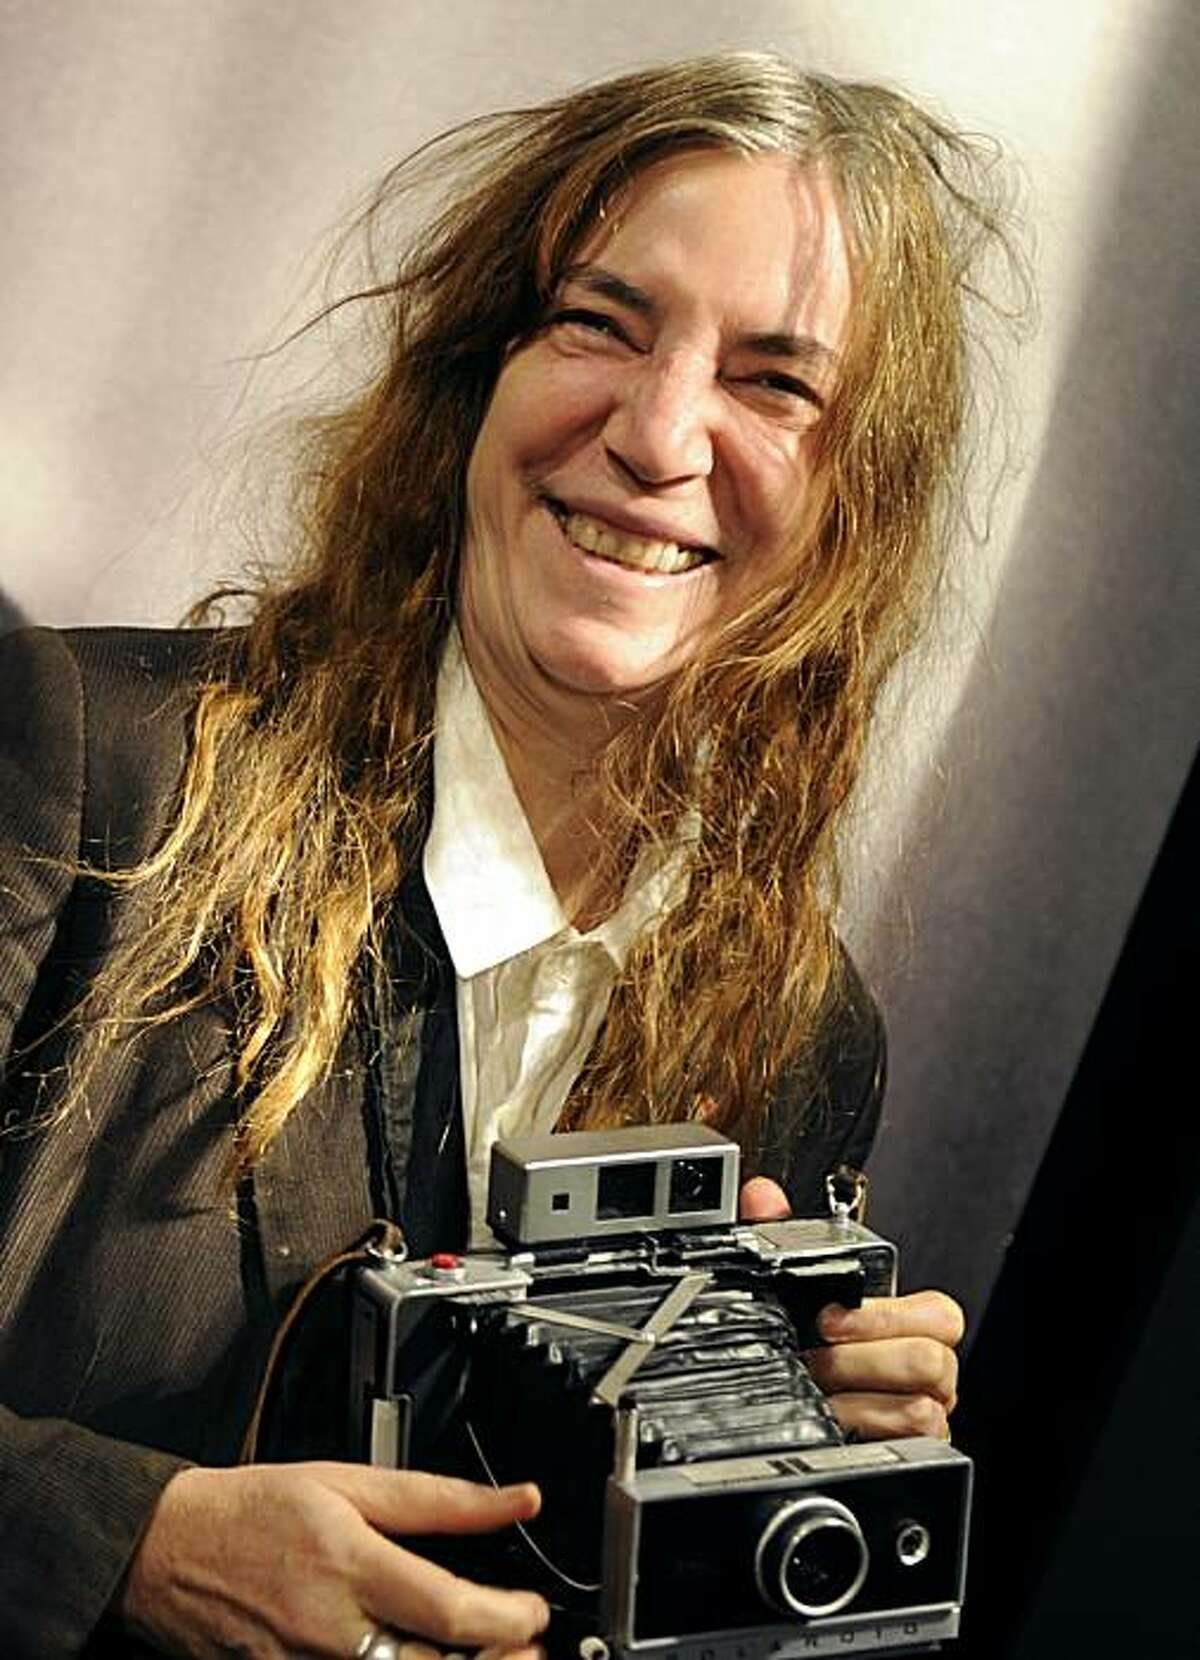 US singer Patti Smith smiles as she takes pictures with her polaroid camera in Madrid on November 26, 2010 during a ceremony at the Casa de America, announcing a week paying tribute to late Chilean writer Roberto Bolano.